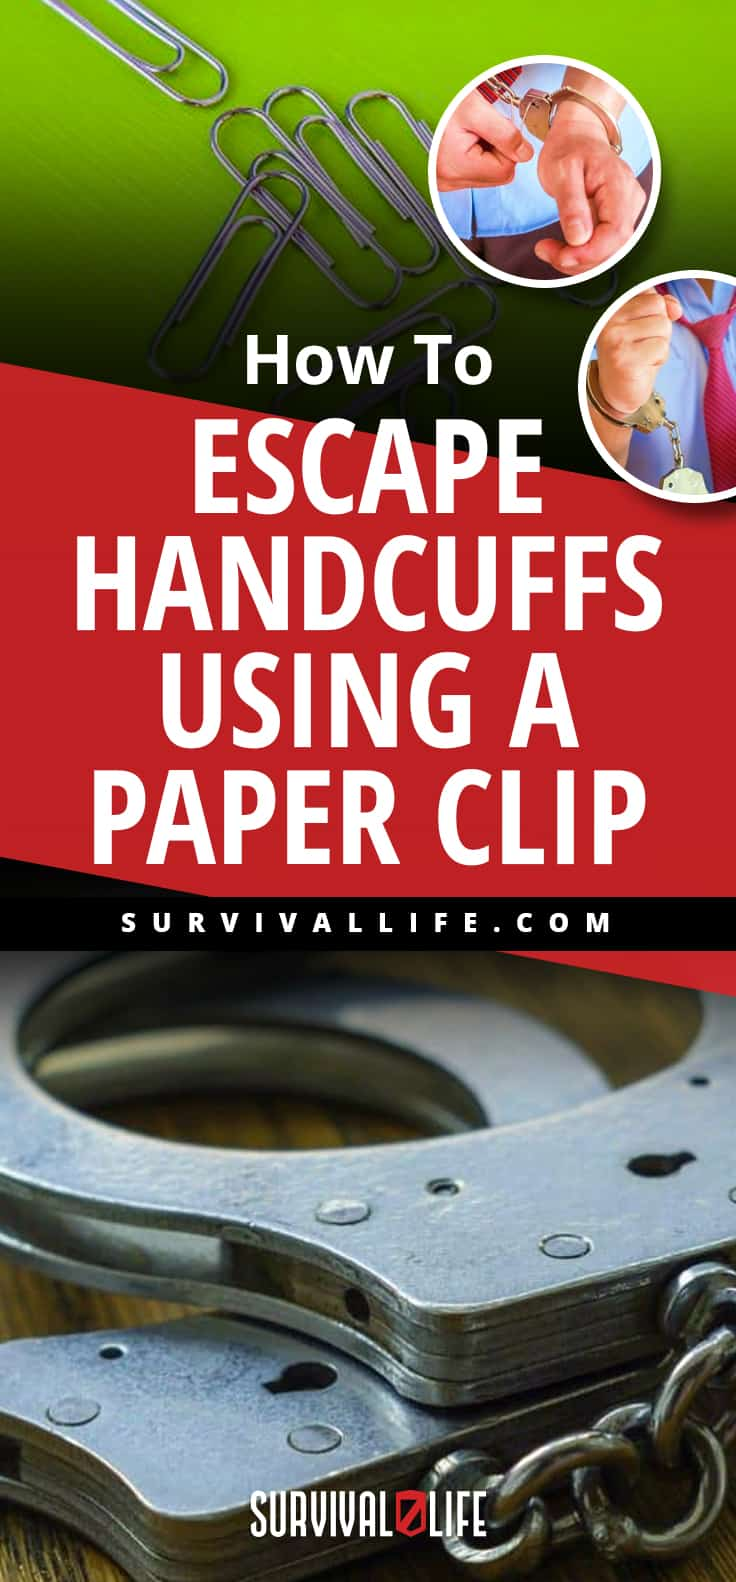 Placard   How To Escape Handcuffs Using A Paper Clip   how to pick handcuffs